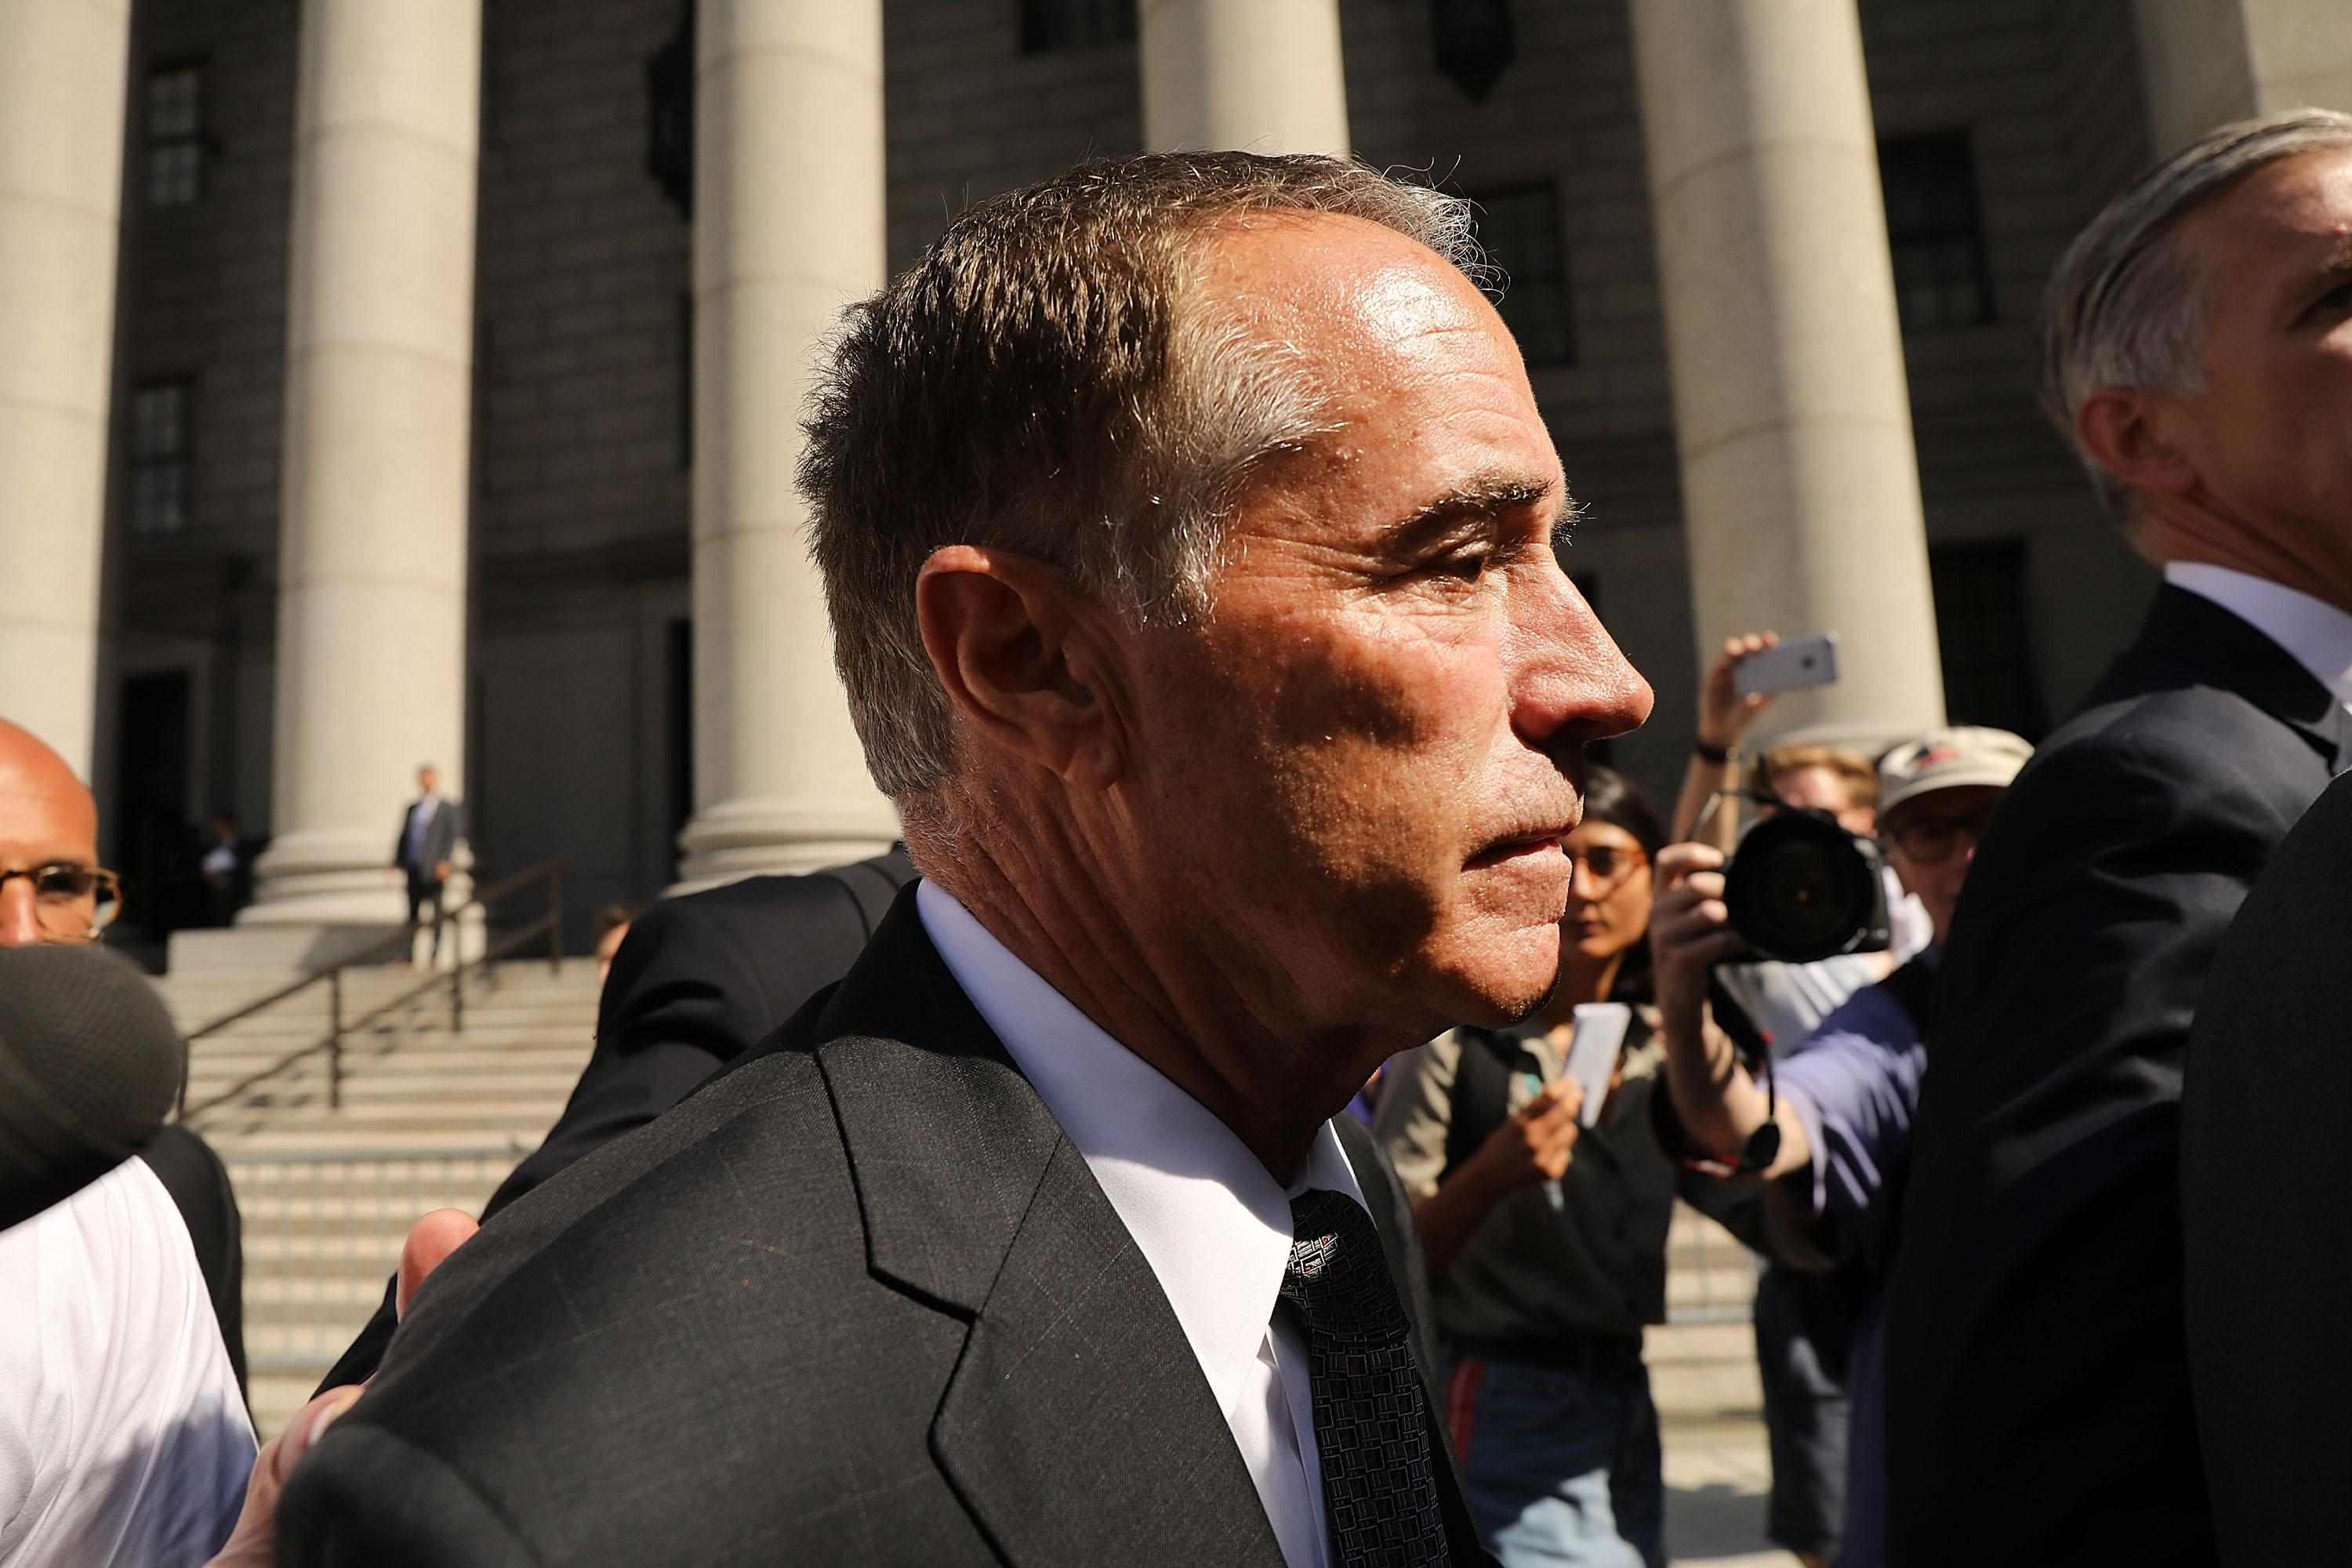 Chris Collins outside a courthouse, surrounded by cameras